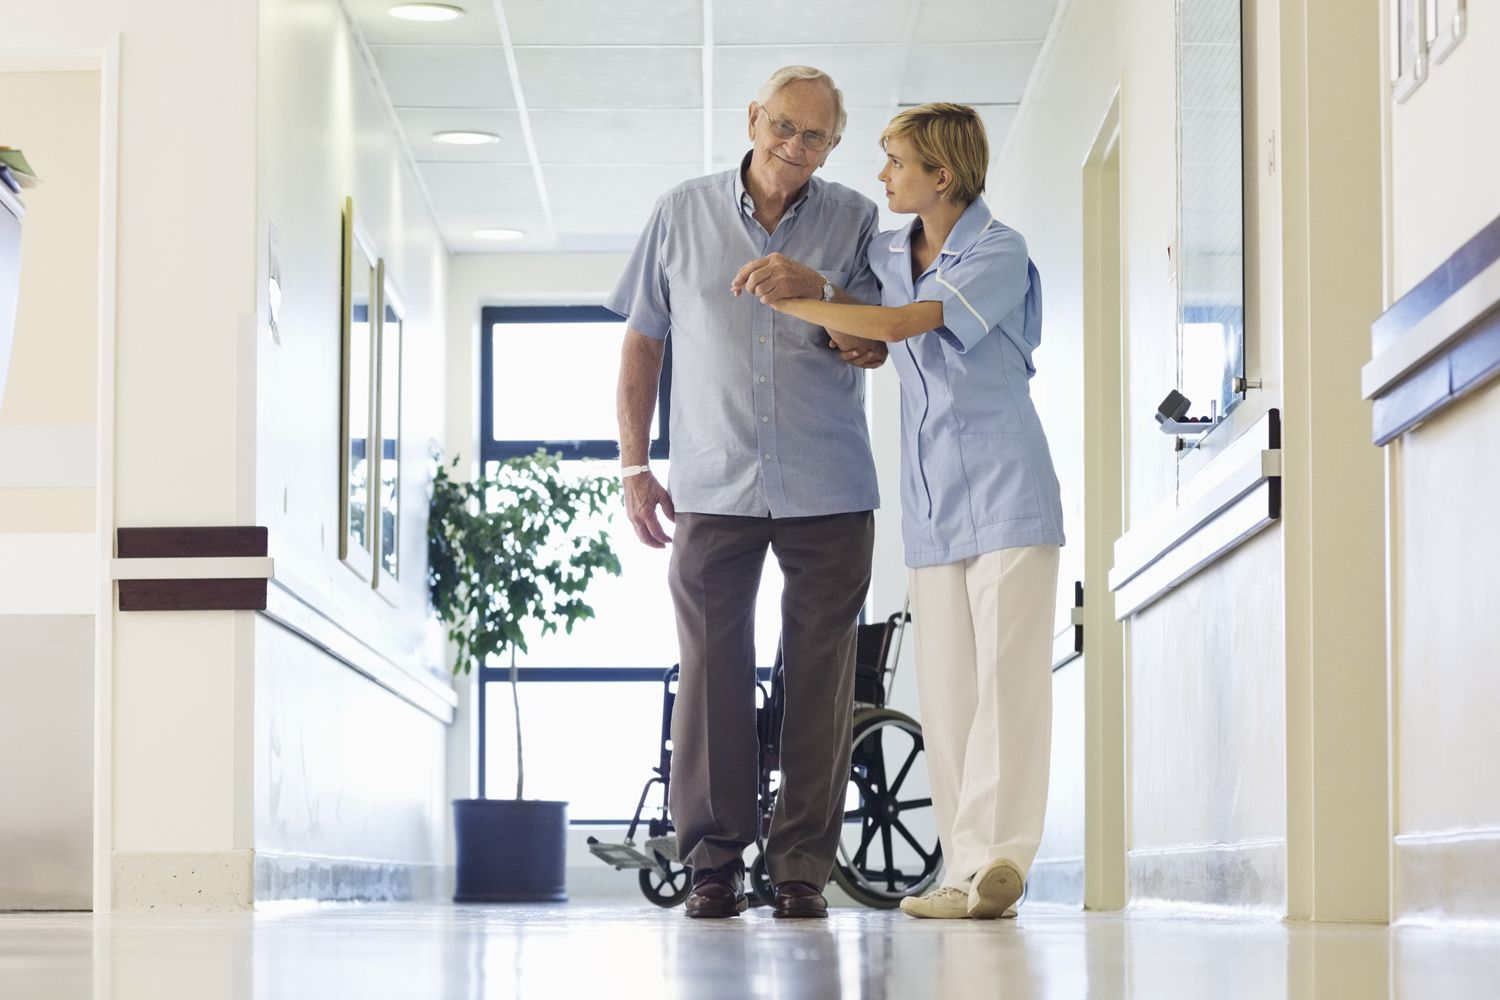 An ambulatory patient and his nurse